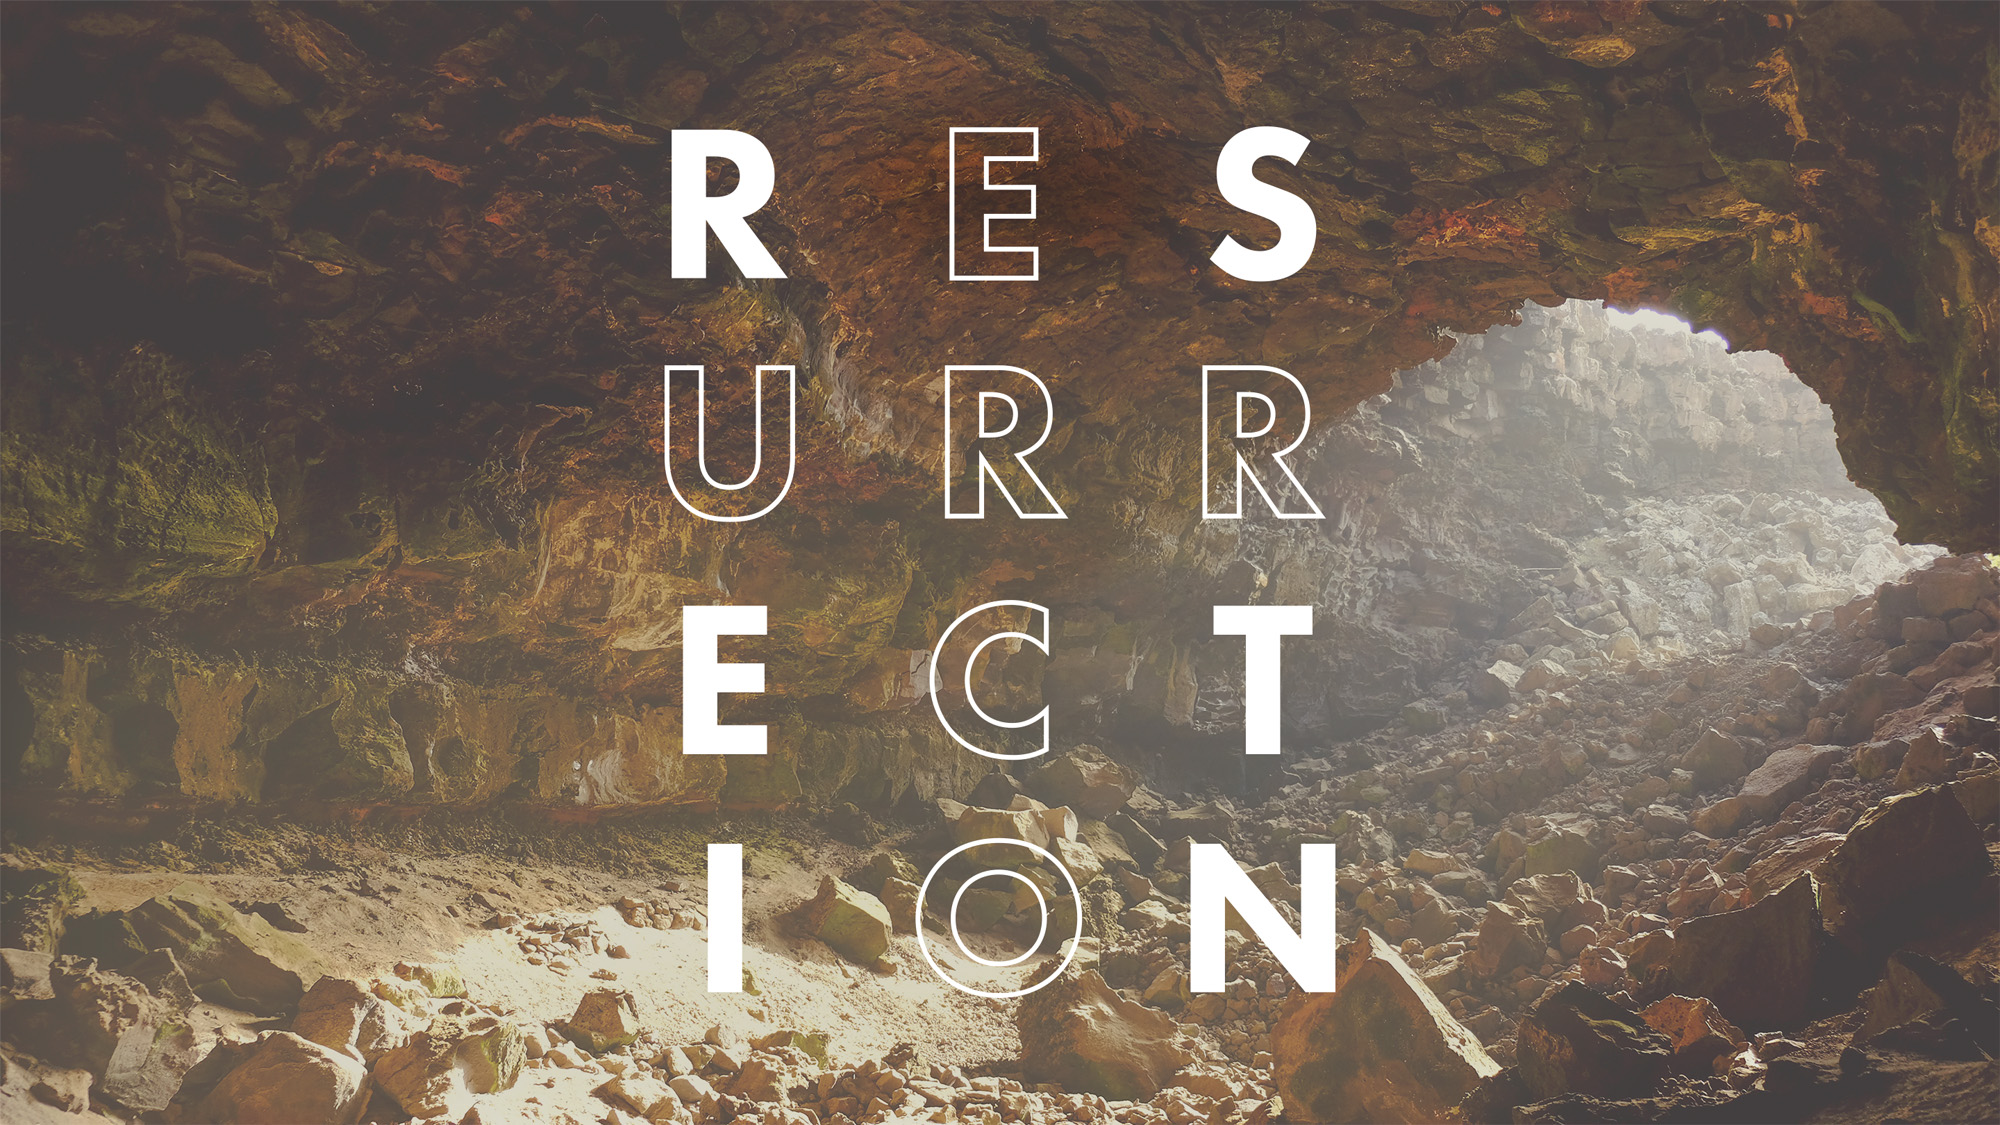 resurrection-title-1-Wide 16x9